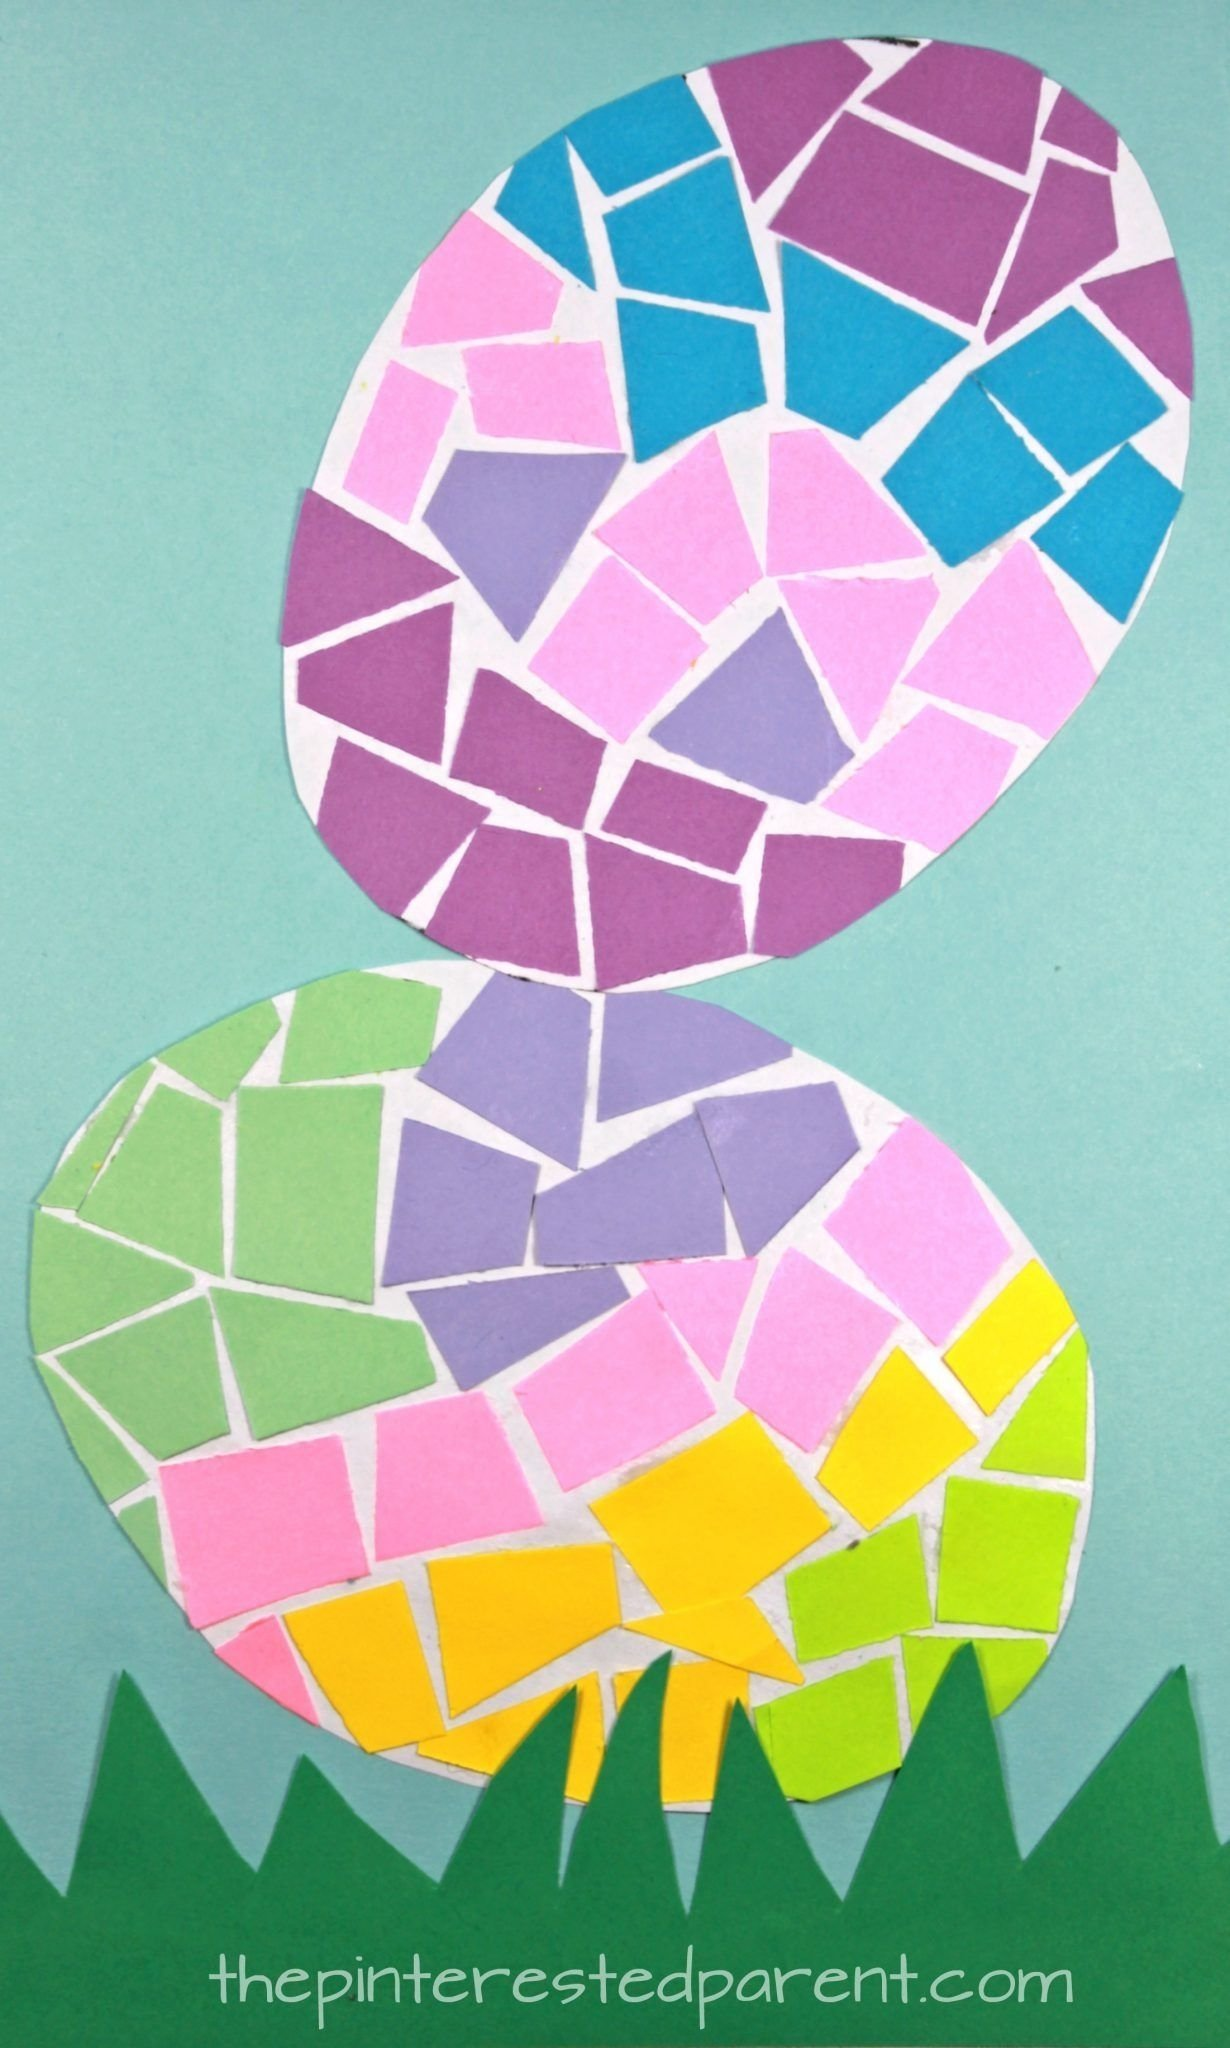 10 Fashionable Easter Arts And Crafts Ideas paper mosaic easter eggs paper mosaic easter art and construction 2021